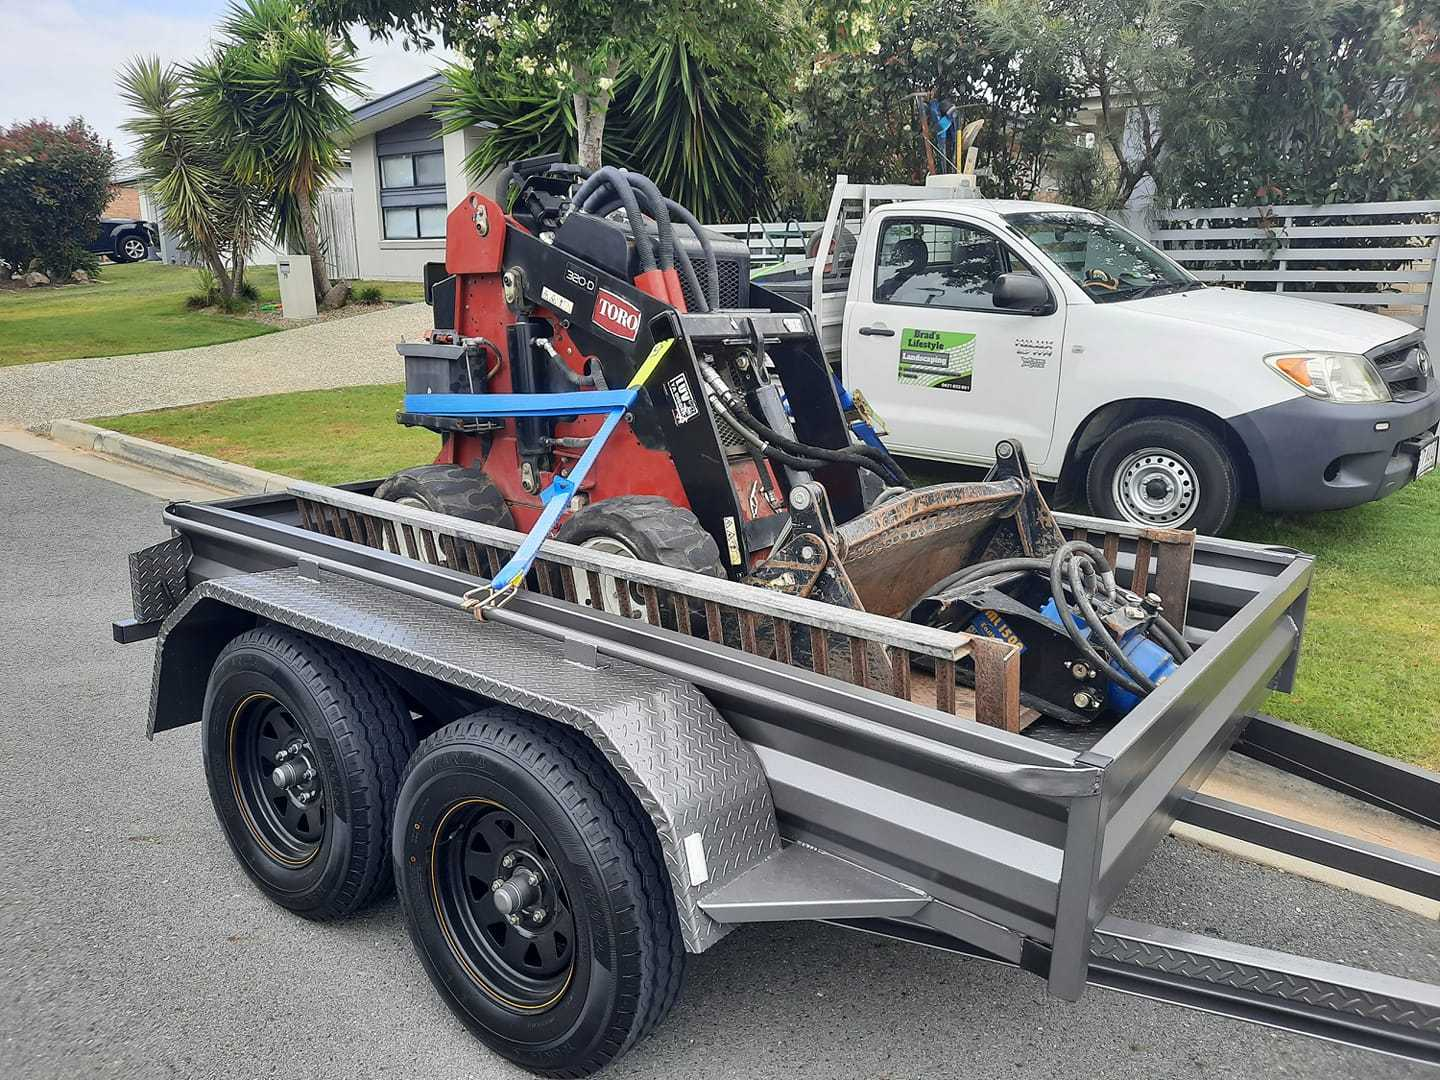 dingo for wet hire - Norwell, Jacobs Well, Kingsholme, Pimpama, Willow Vale, Upper Coomera